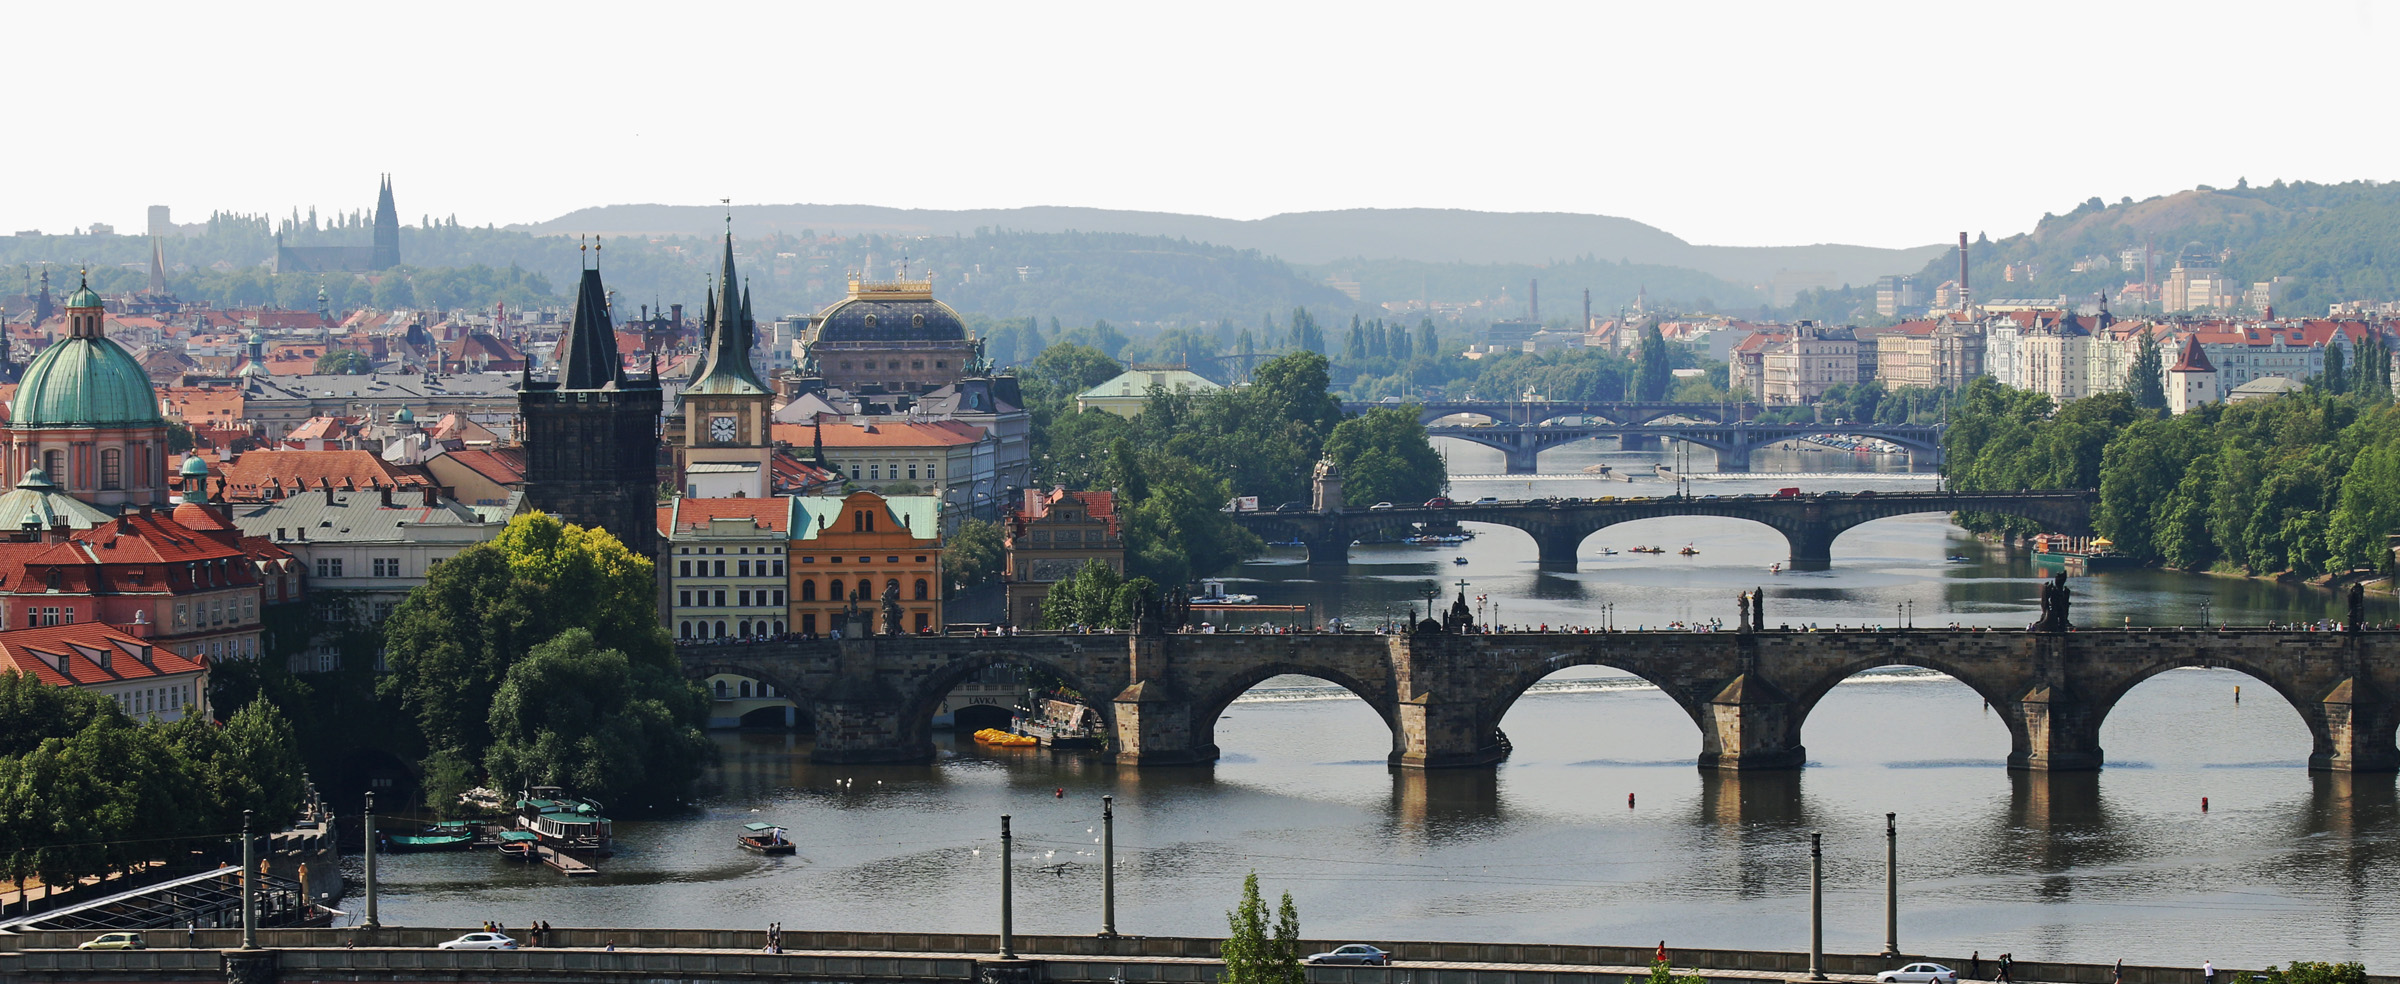 Prague, Czech Republic - by Daniela Hartmann